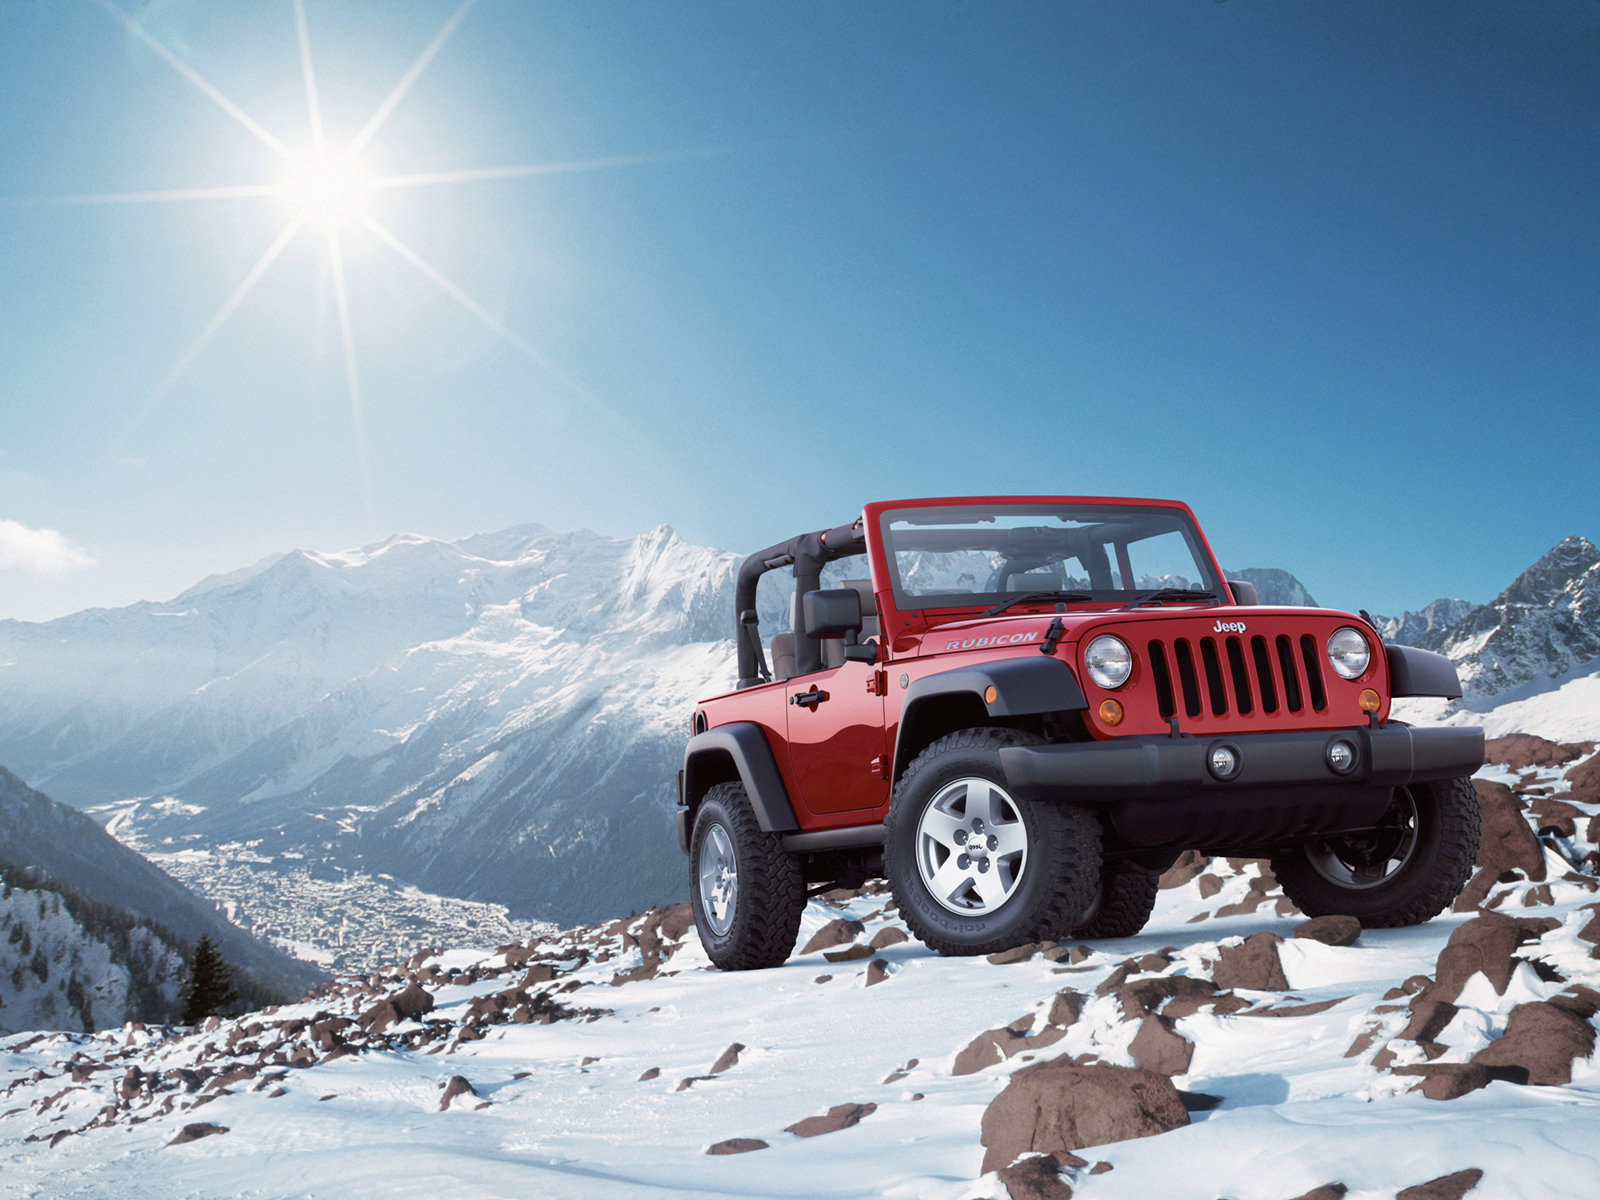 jeep Wallpaper and Background Image | 1600x1200 | ID:448870